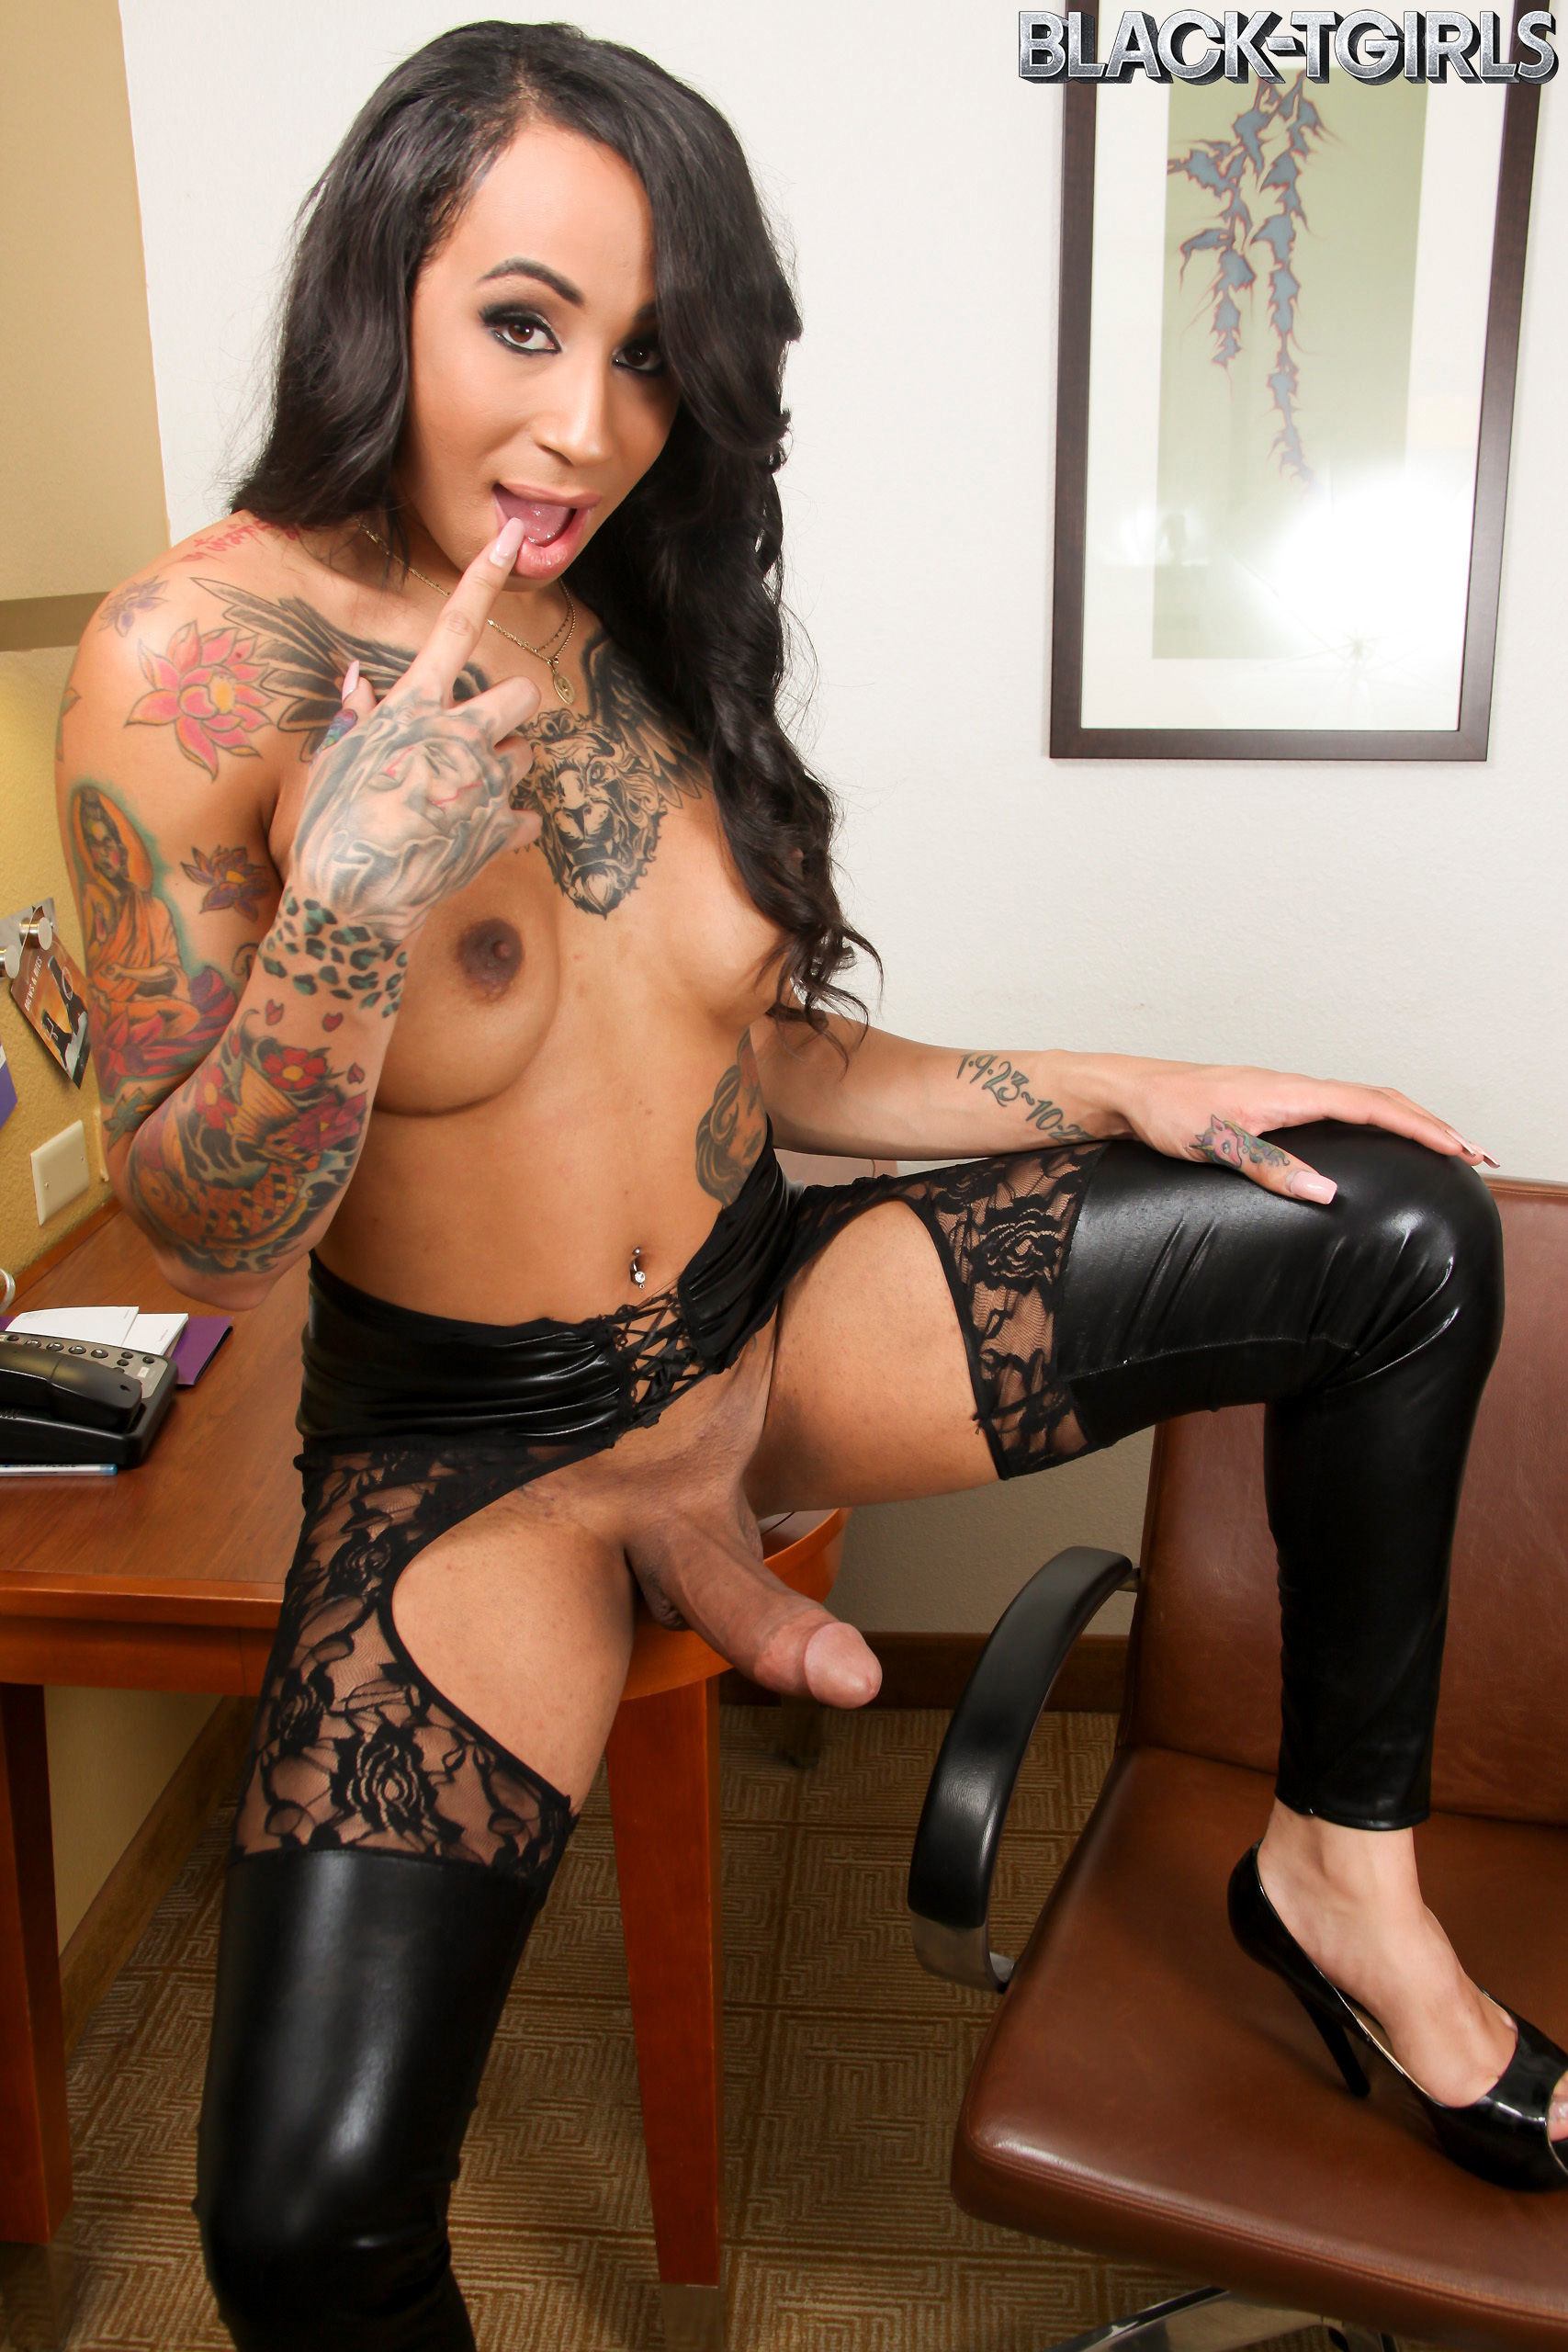 Hungry Honey Foxxx Is Back! This Provoking Transgirl Has A Smoking